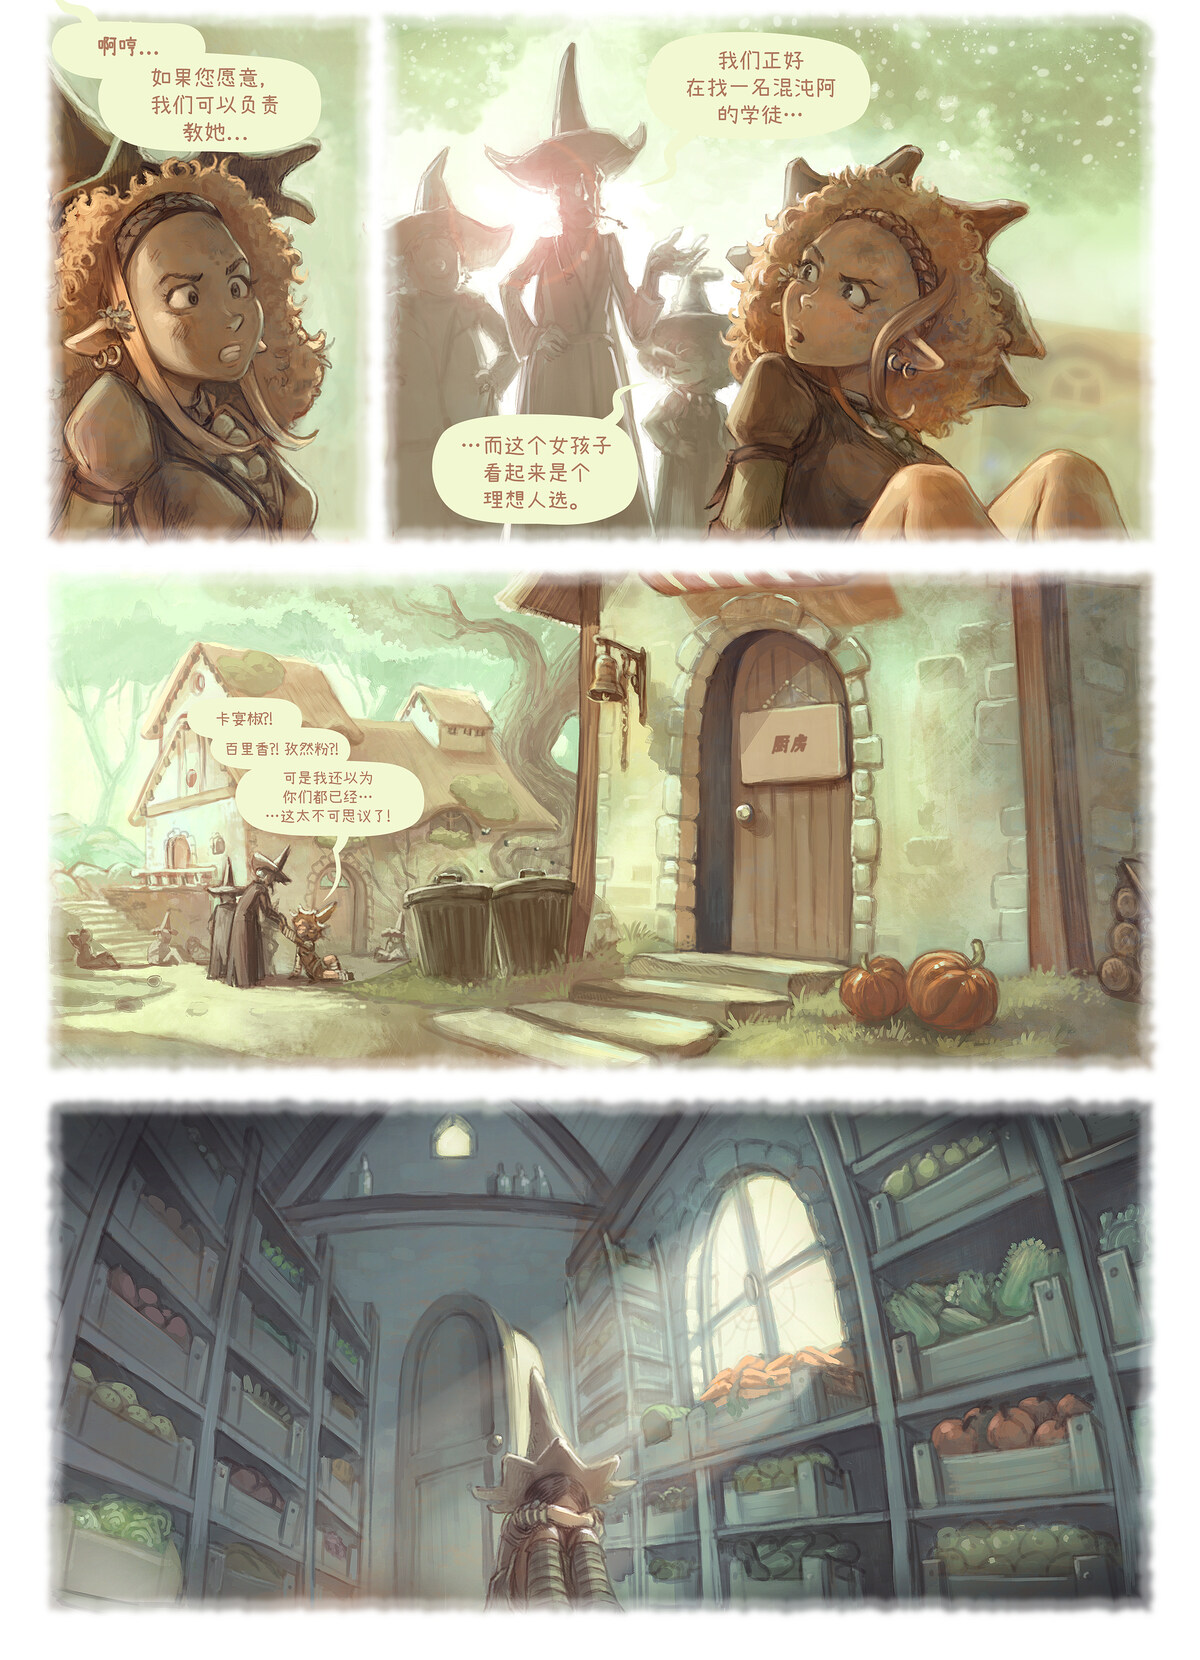 A webcomic page of Pepper&Carrot, 漫画全集 18 [cn], 页面 5